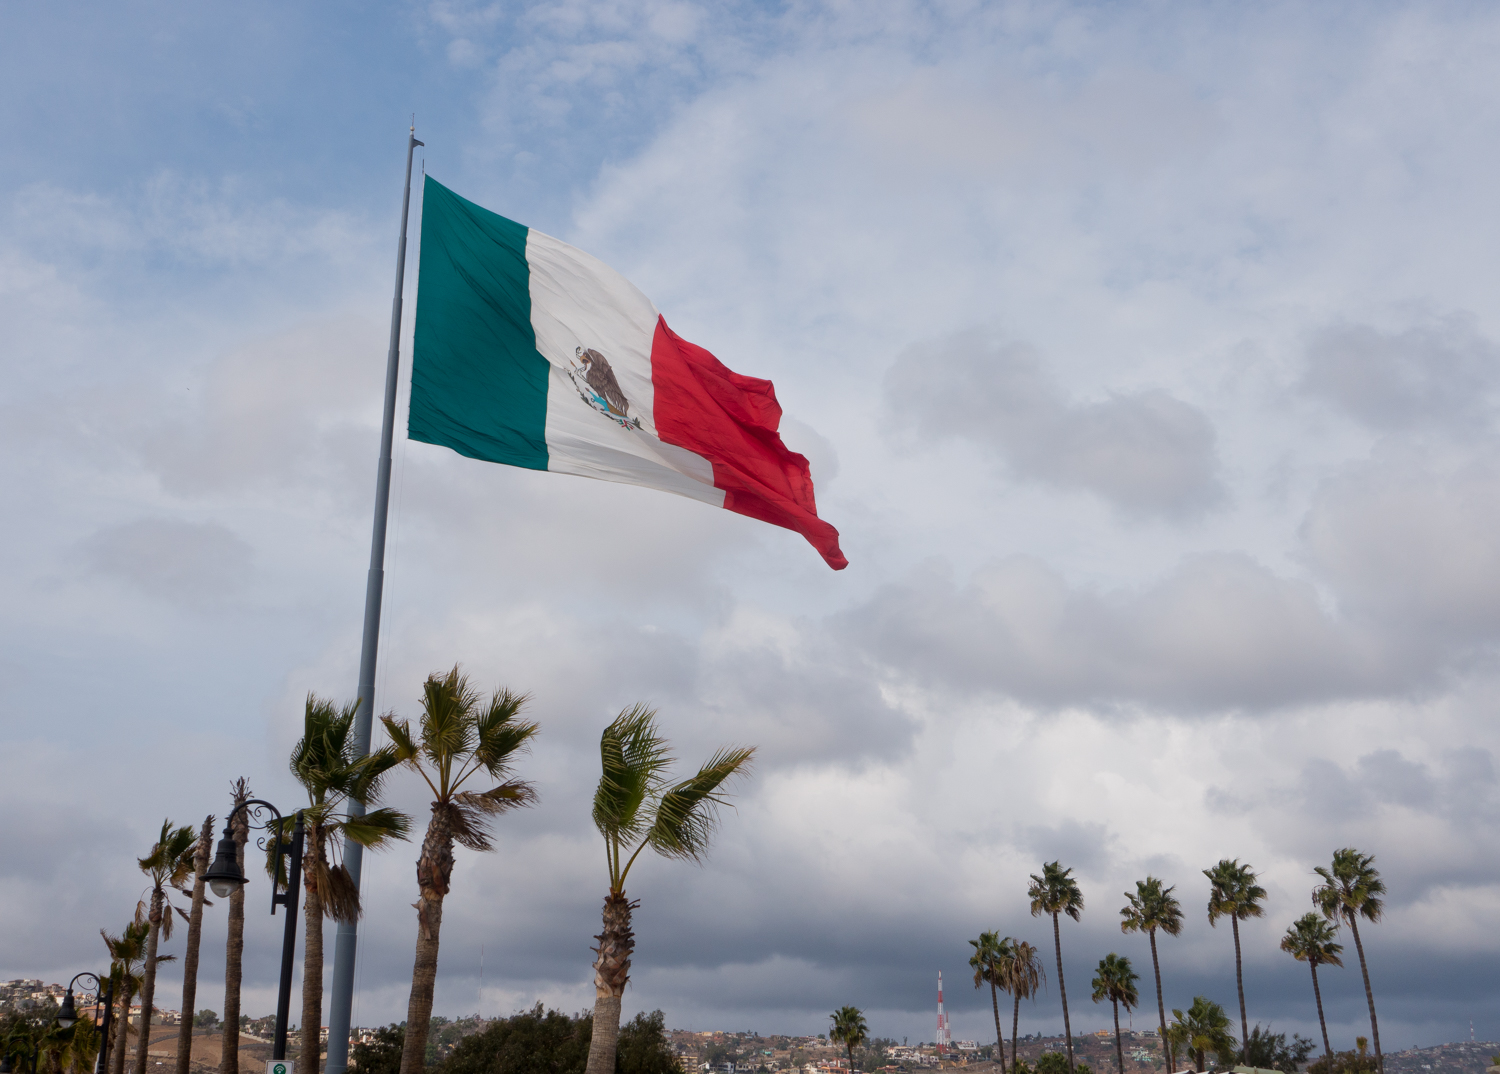 The amazing flag that flies over Ensenada